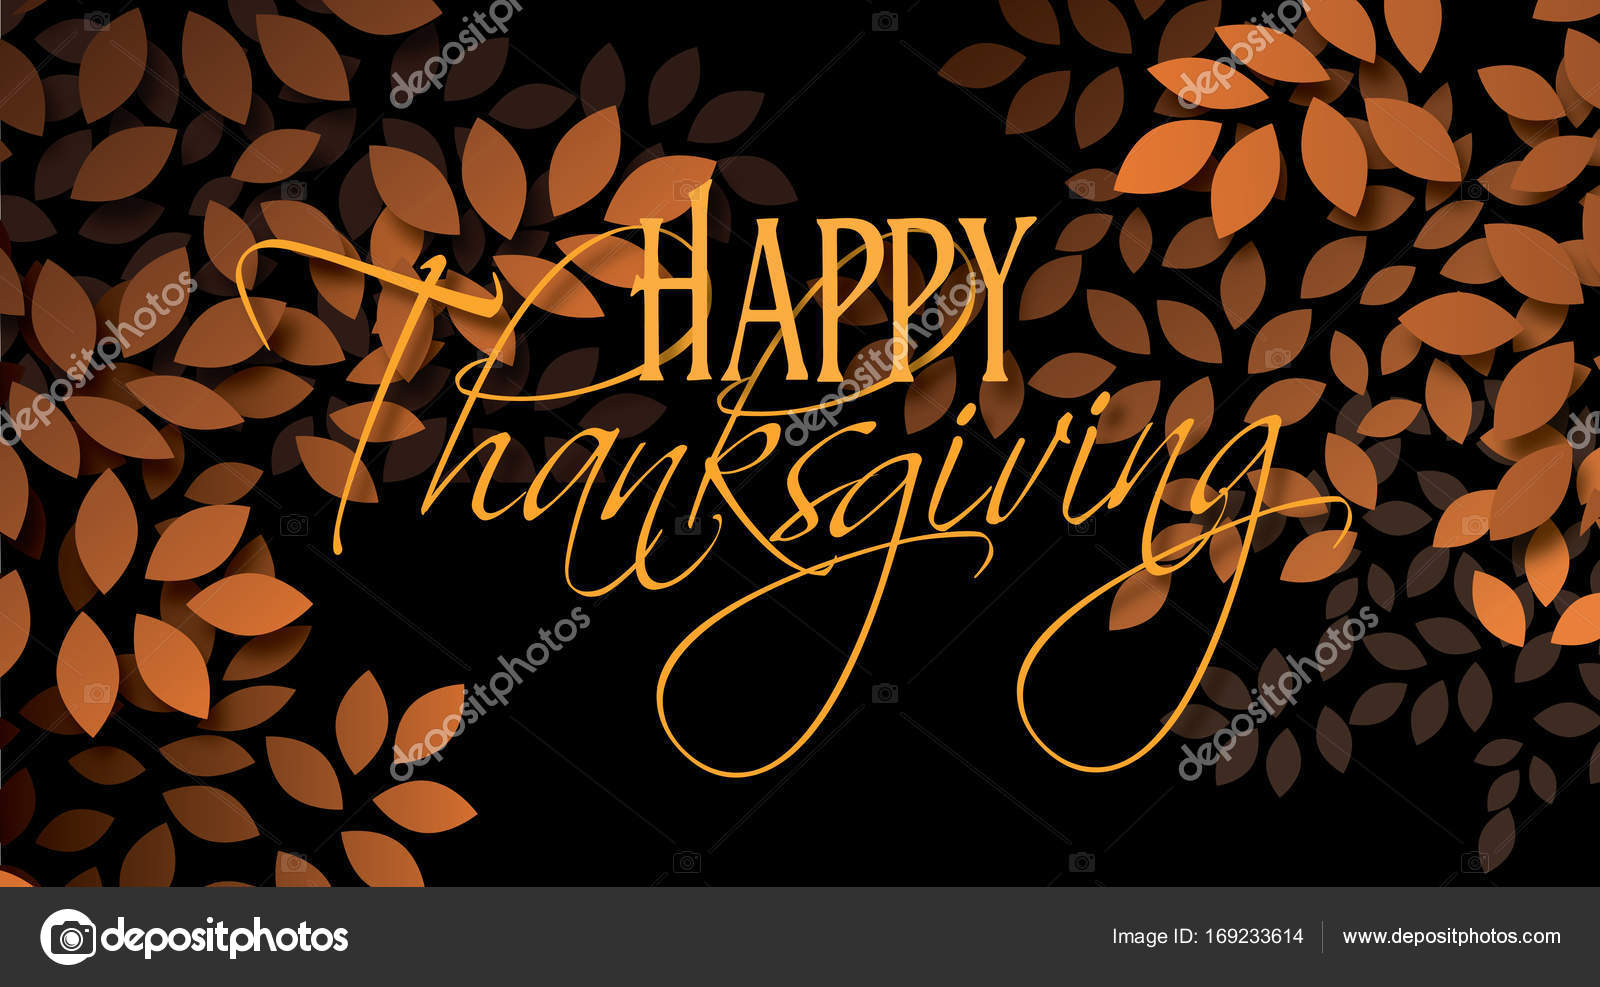 Happy thanksgiving holiday message with leaves stock photo a simple uplifting contemporary design use as stand alone holiday art or possible holiday greeting card m4hsunfo